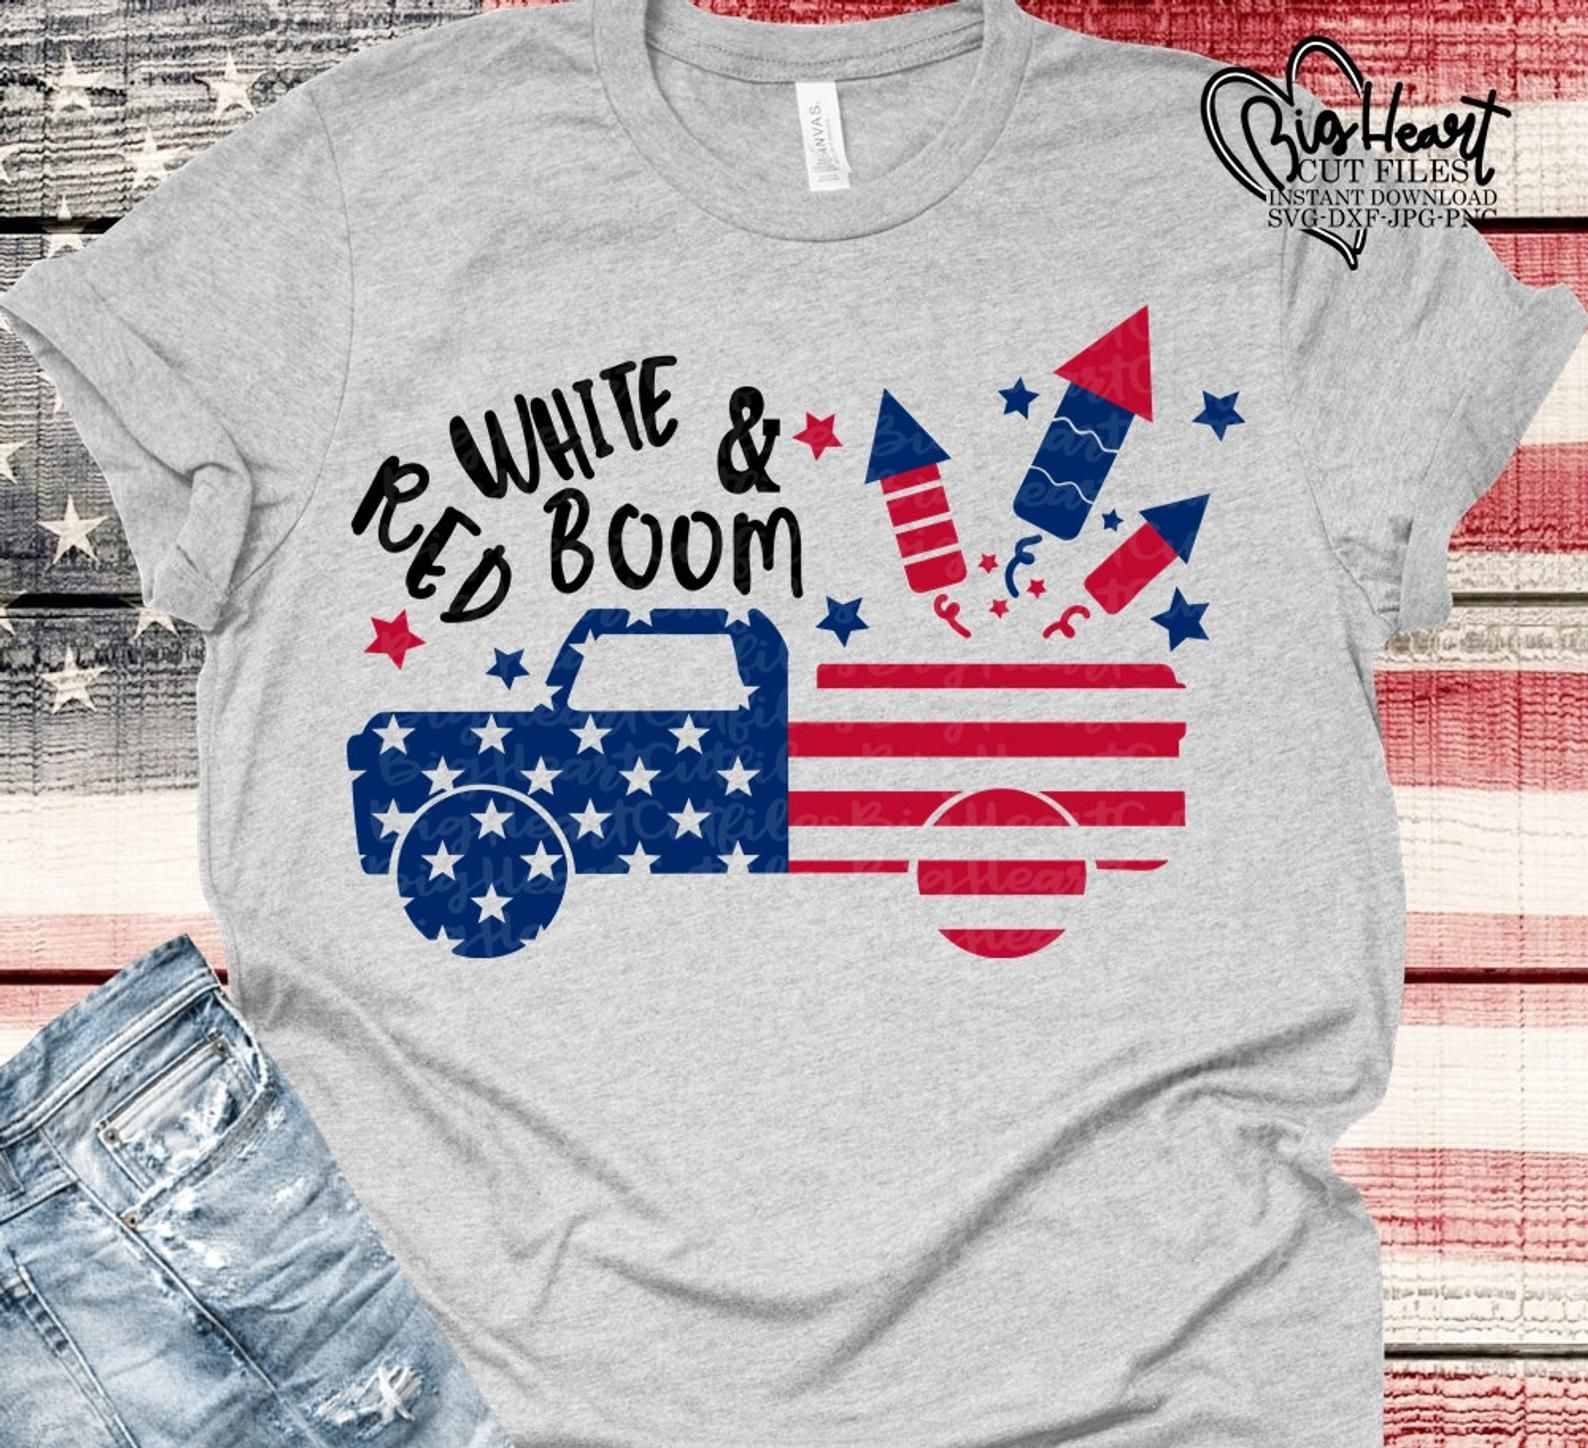 1628+ 4Th Of July Truck Svg – SVG,PNG,EPS & DXF File Include